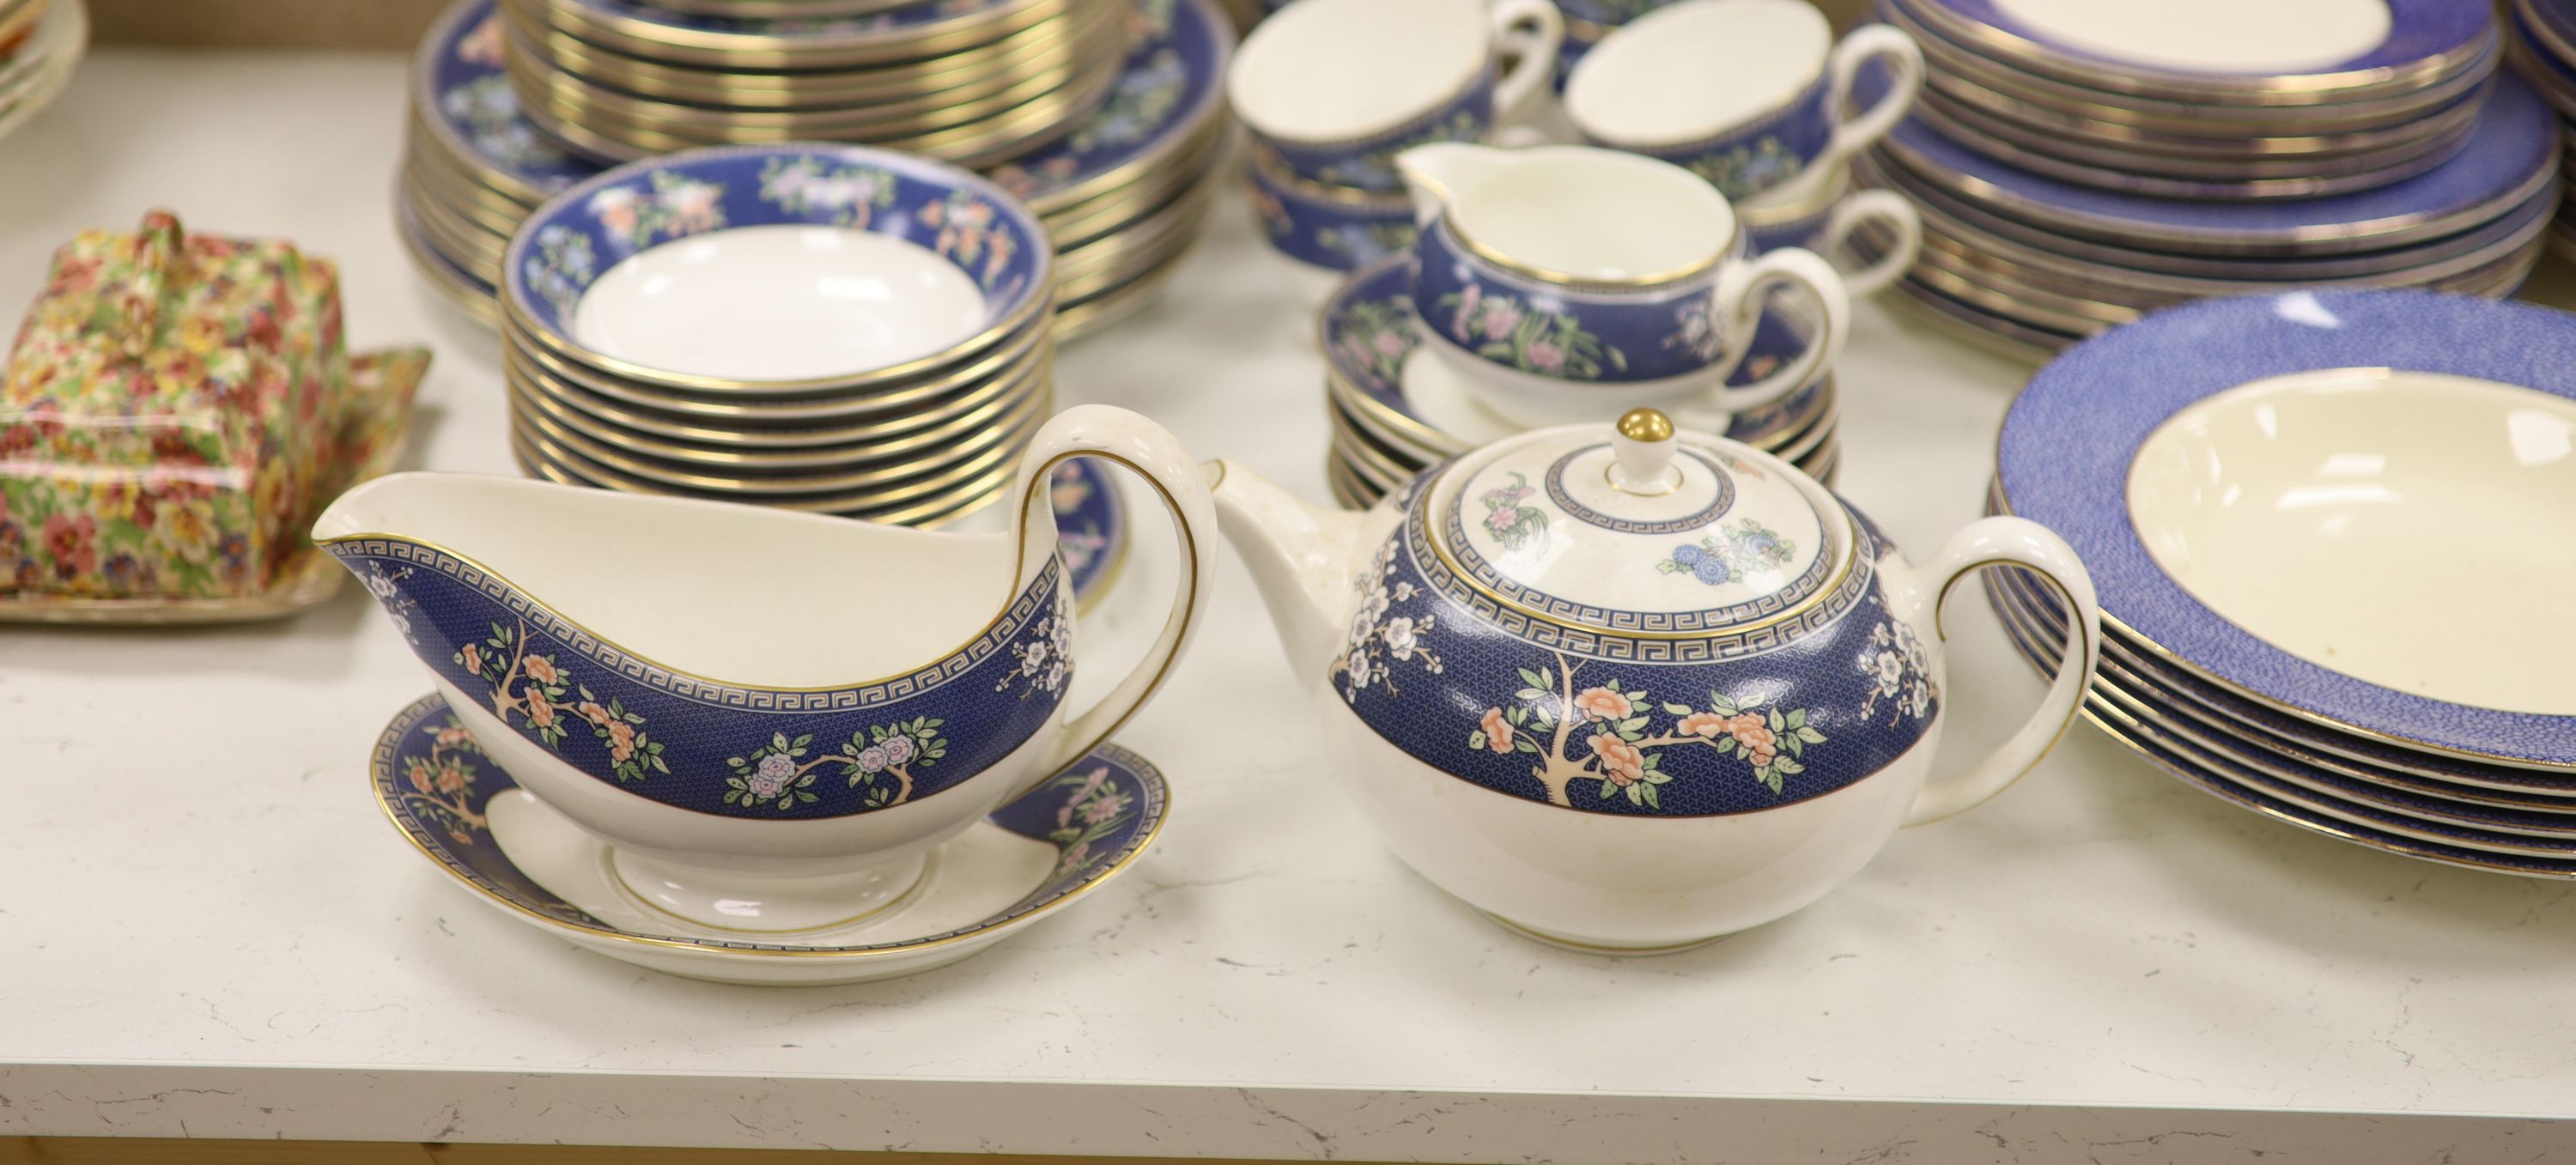 A Wedgwood 'Blue Siam' pattern part dinner service and other mixed ceramics - Image 5 of 8